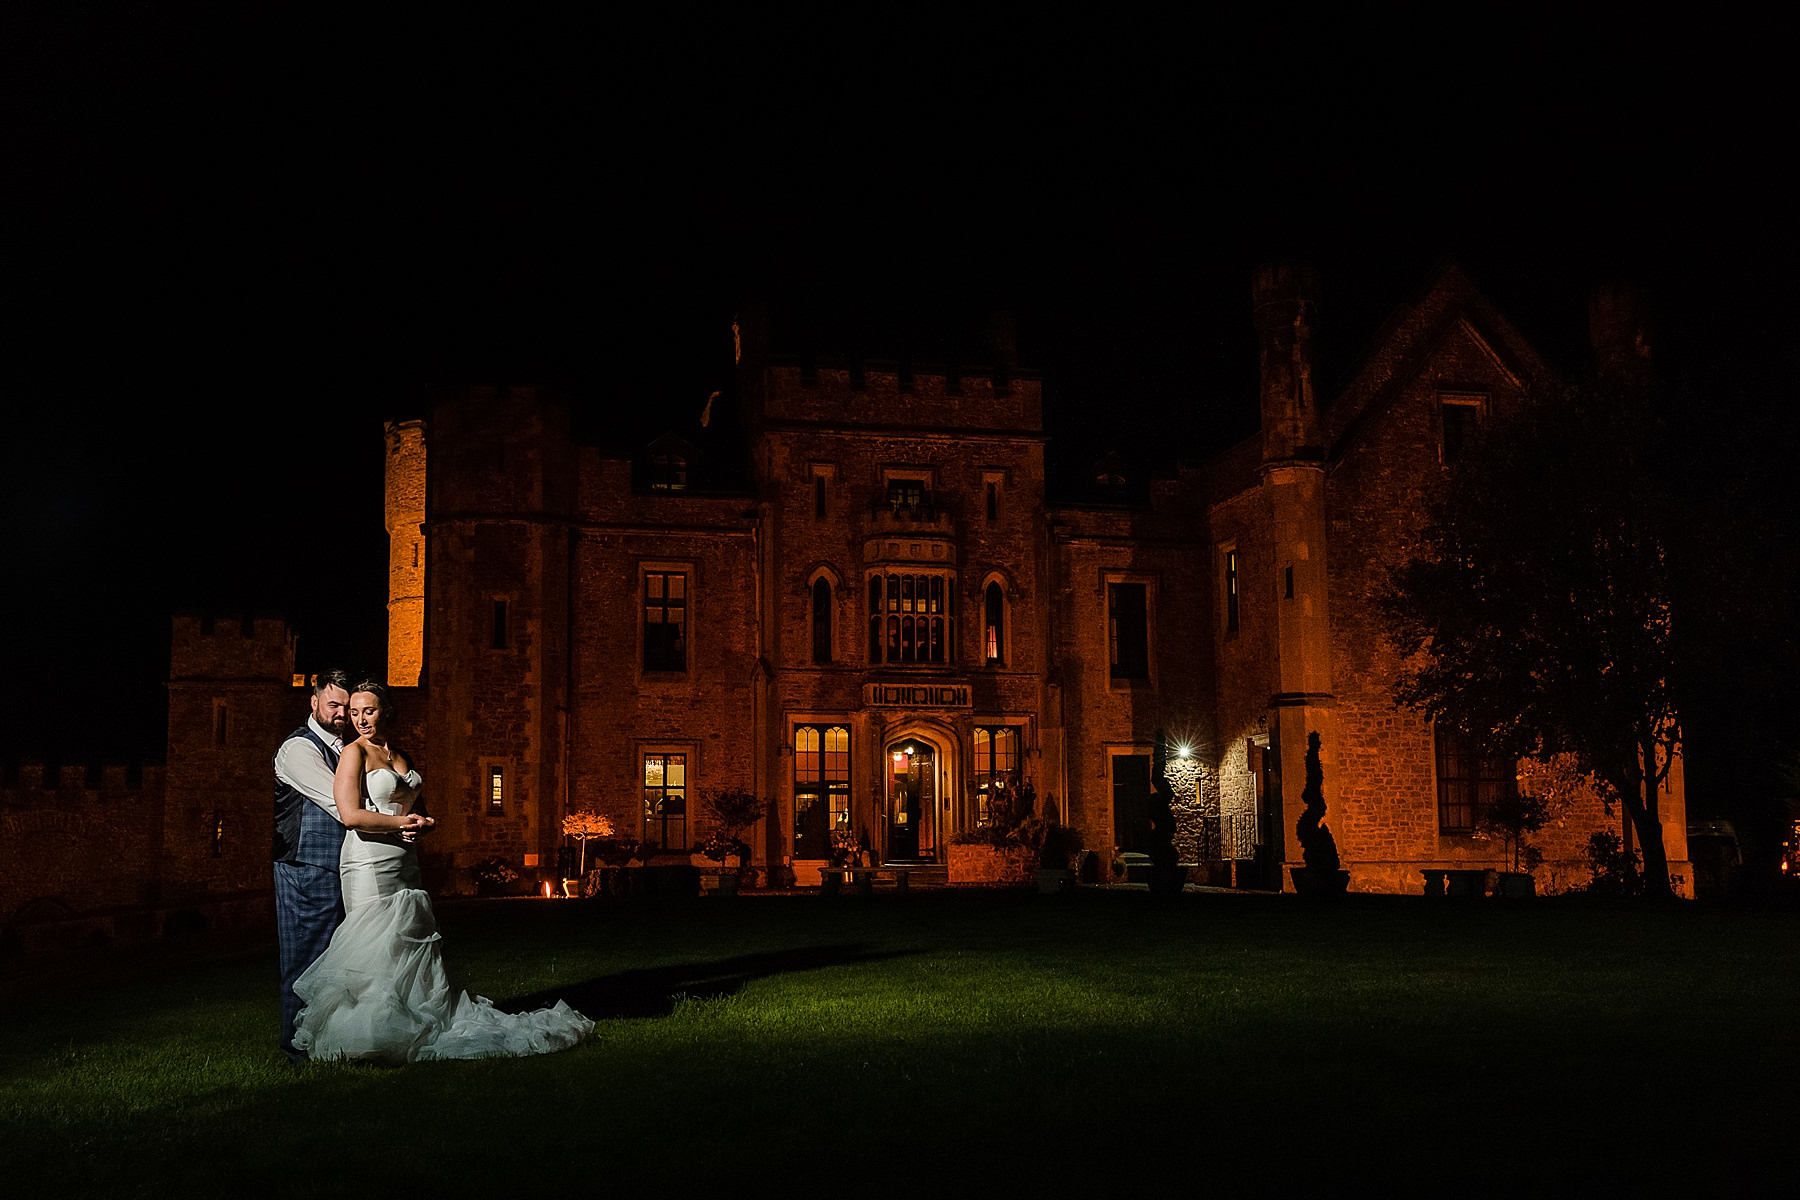 night photos at rowton castle